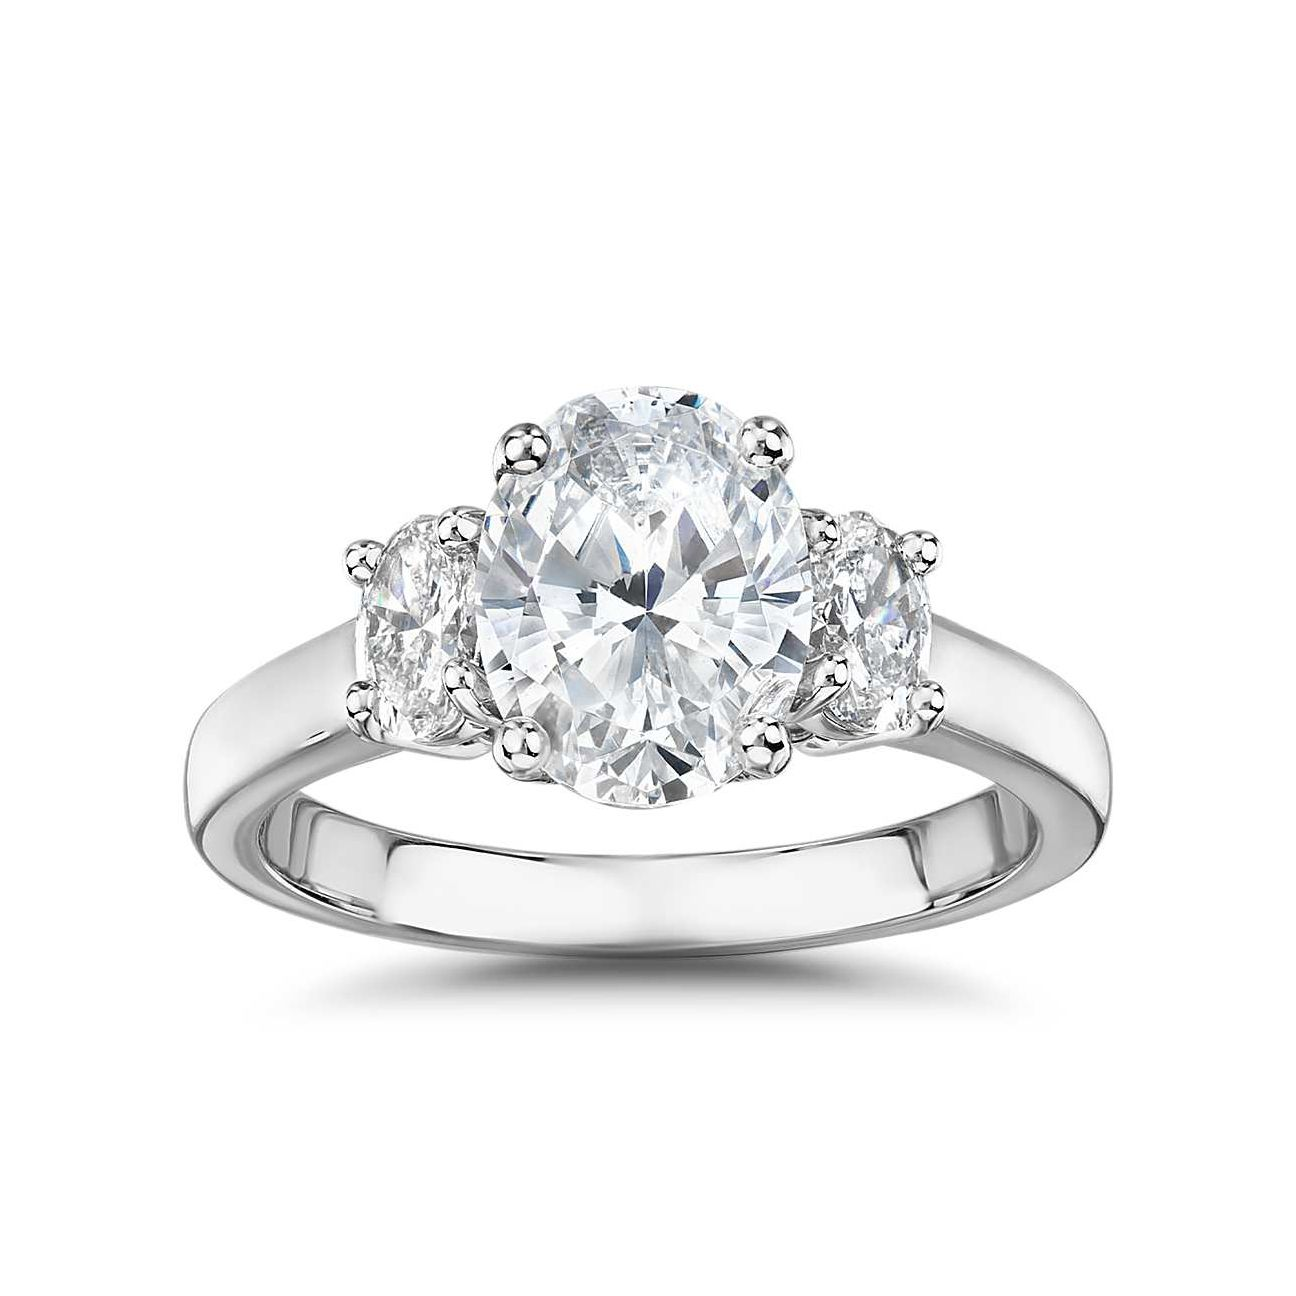 Blue Nile The Gallery Collection™ Oval-Cut Three-Stone Diamond Engagement Ring